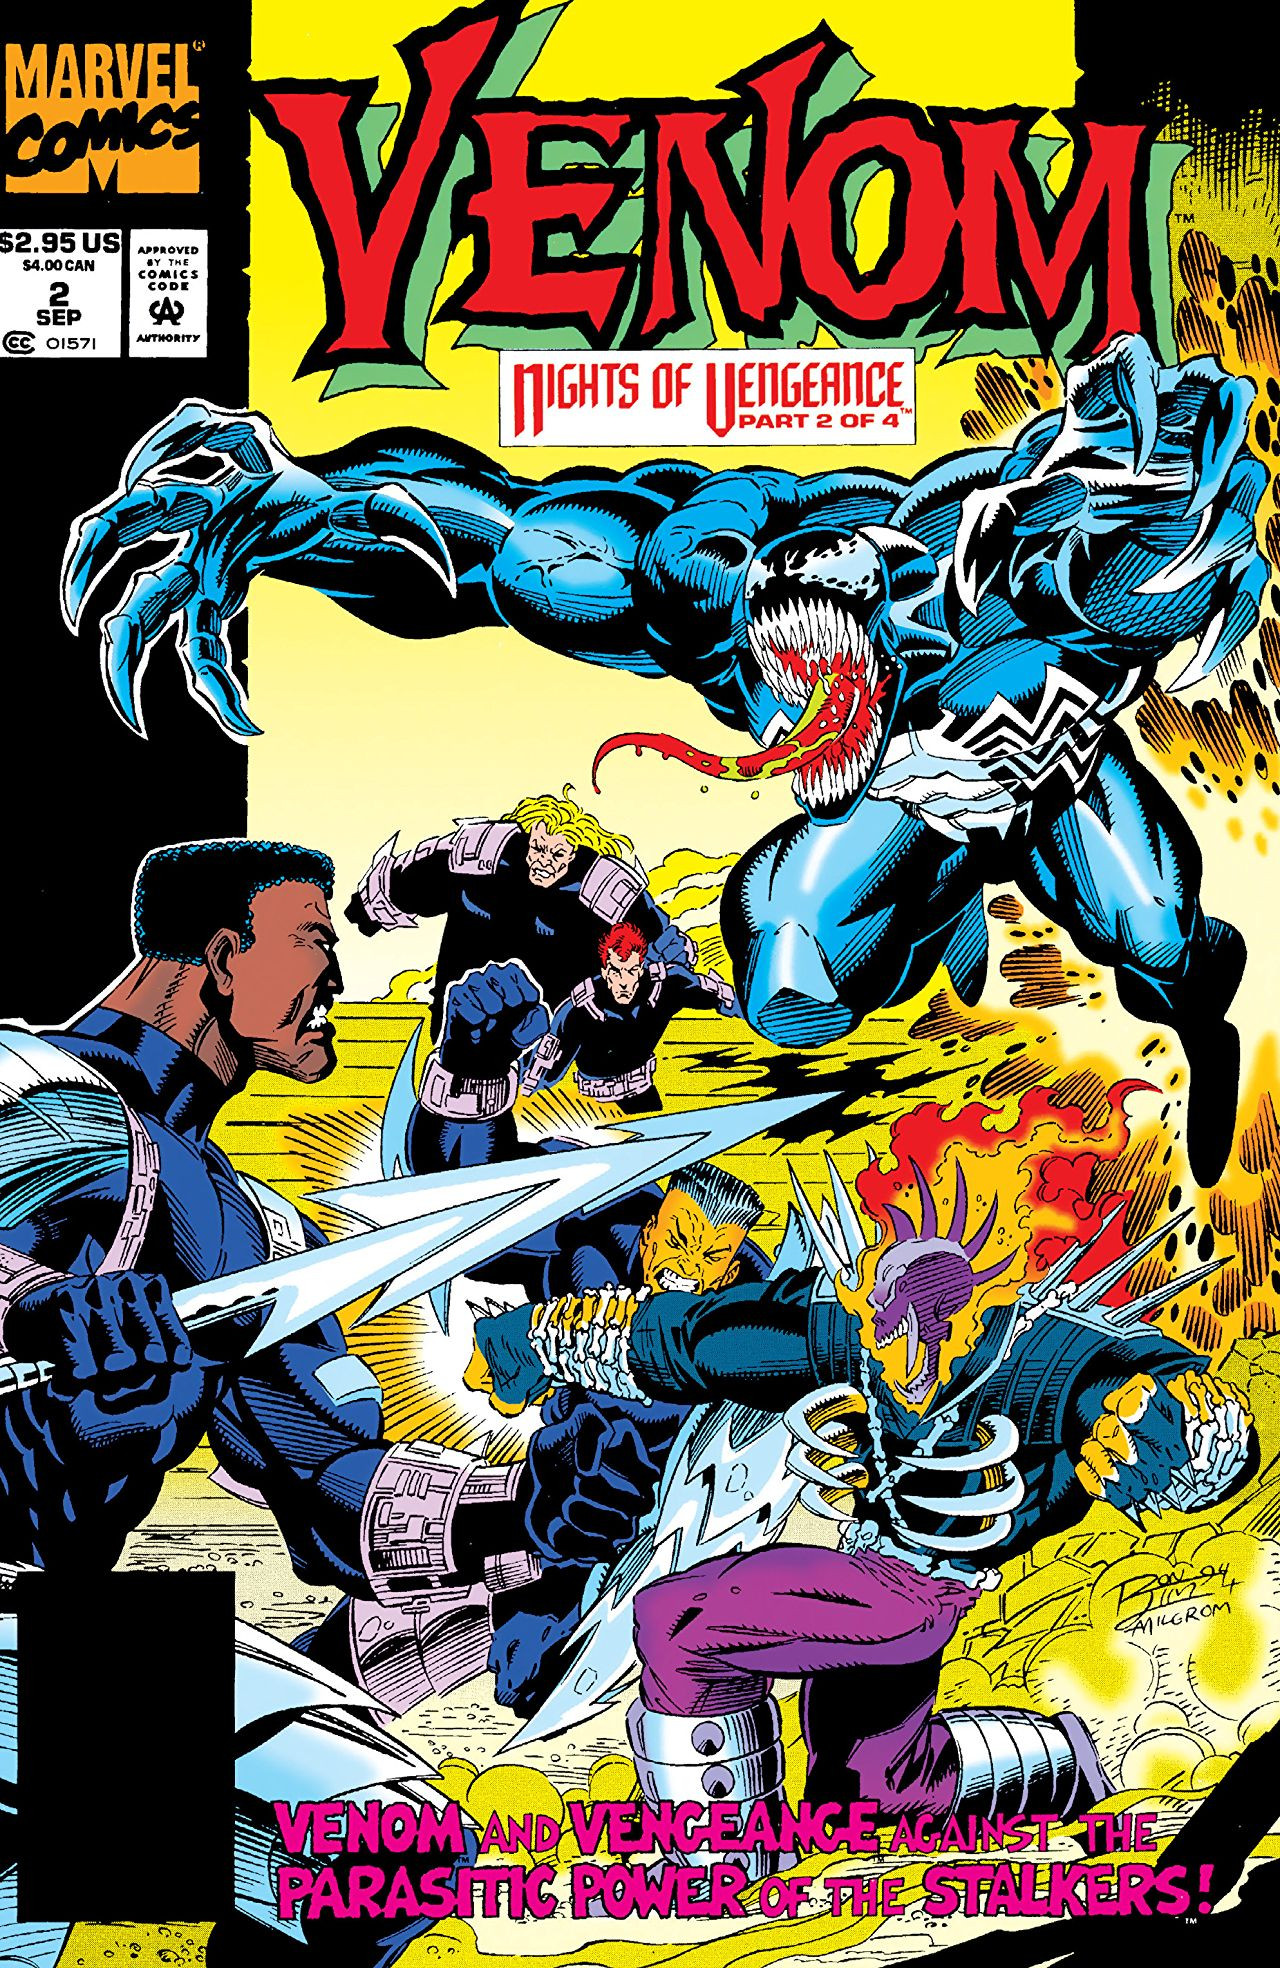 Venom: Nights of Vengeance Vol 1 2